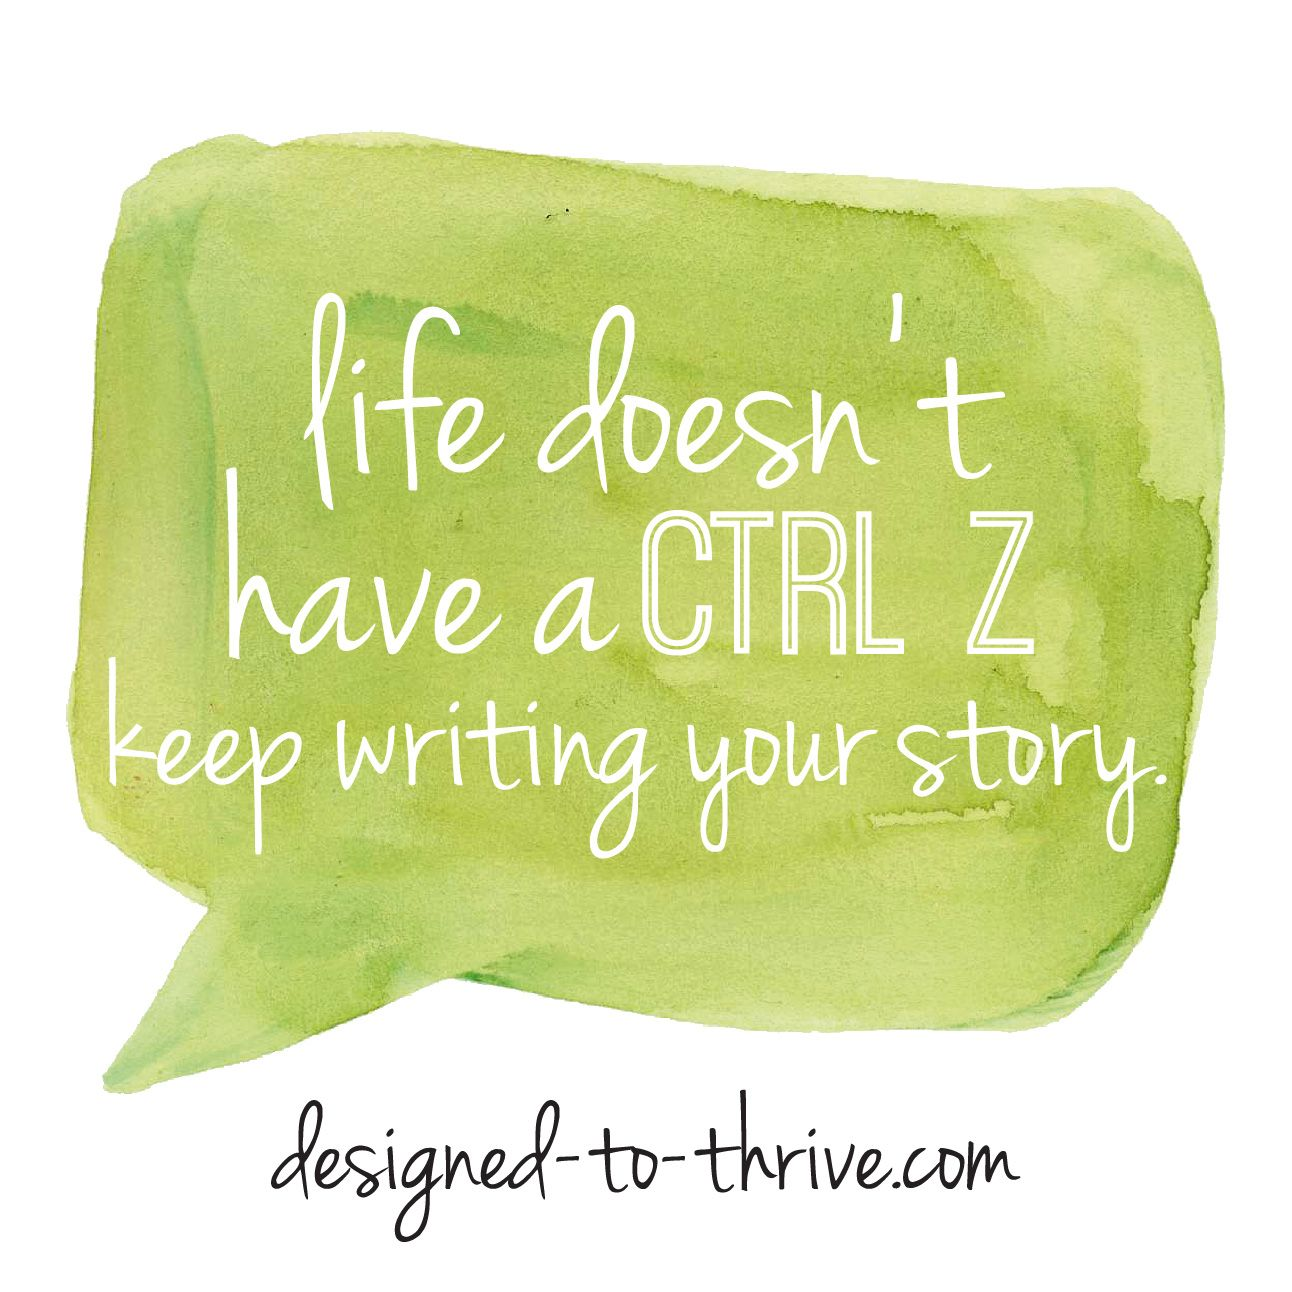 Keep writing your story.